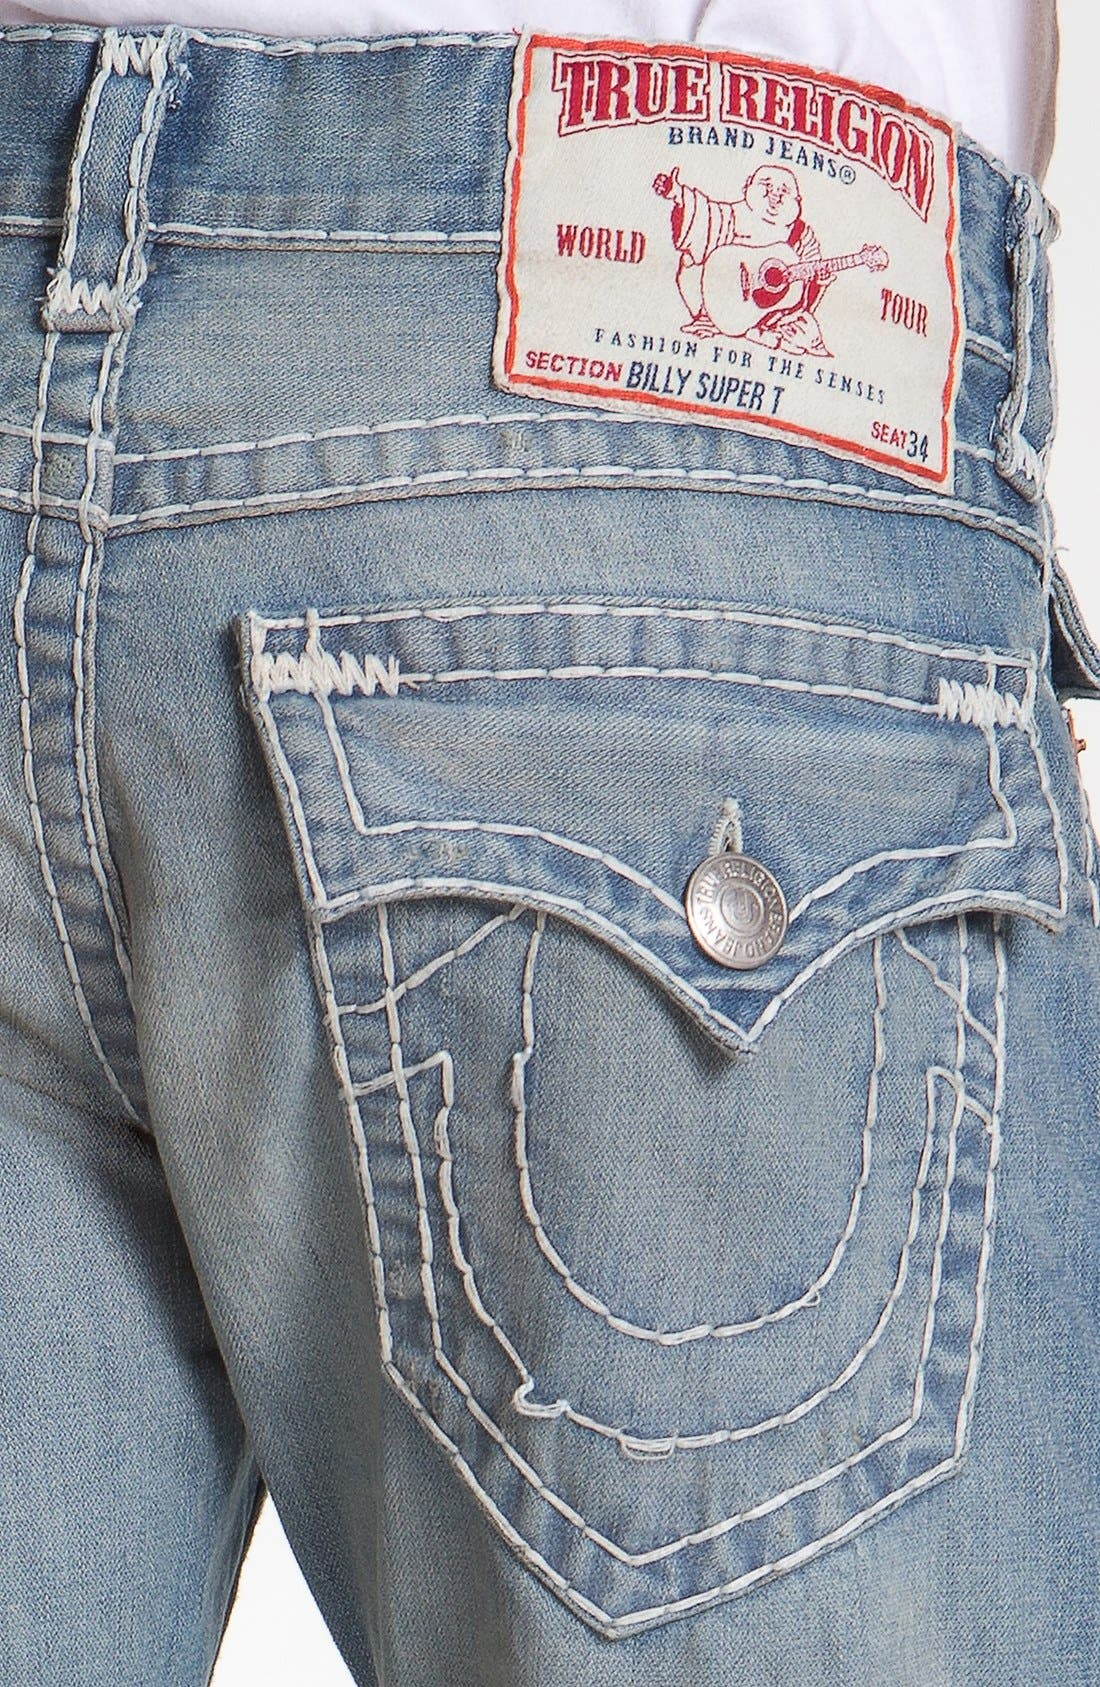 Alternate Image 4  - True Religion Brand Jeans 'Billy - Natural Super-T' Bootcut Jeans (Wicket)